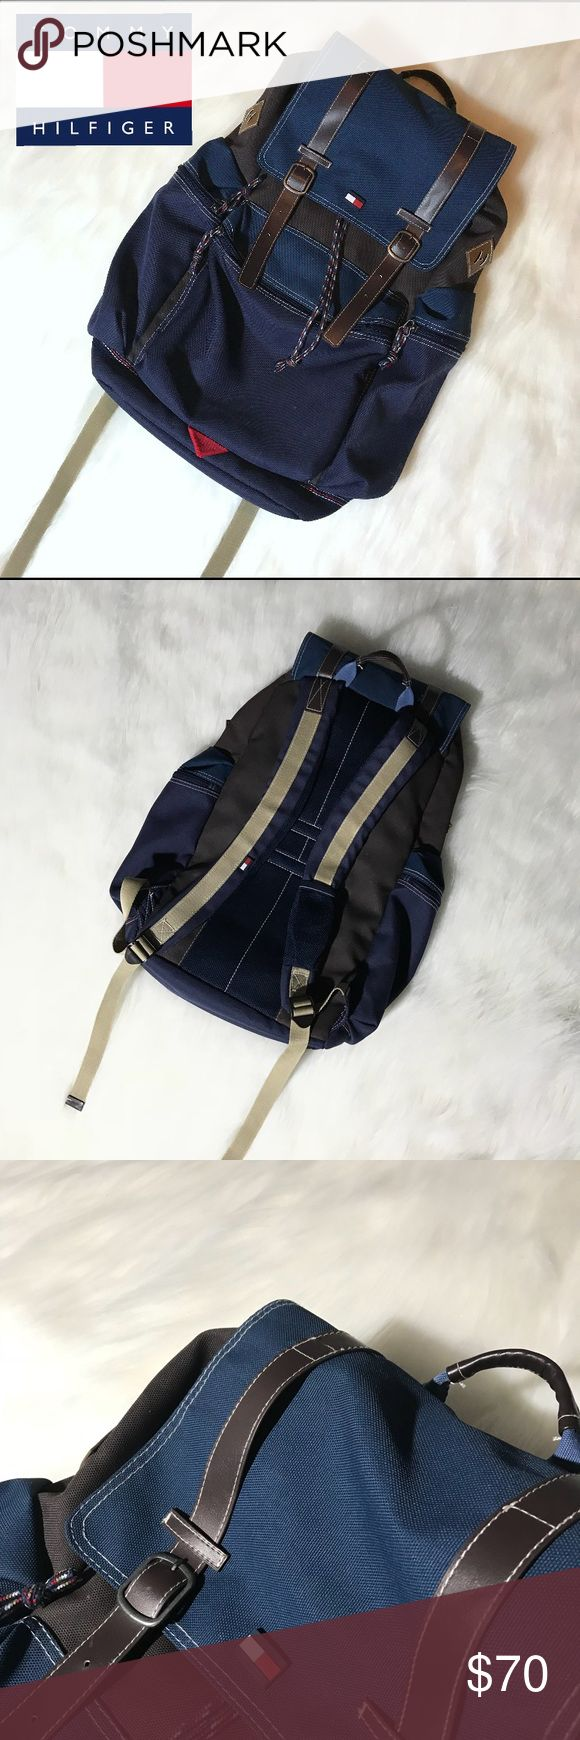 Tommy Hilfiger Backpack TOMMY HILFIGER   Rucksack Backpack   Trendy Old School 90s Vintage   Street Style   Blue and Brown   Great for Traveling Adventure School Hiking Multi Purpose   Great Condition No Flaws   Men's and Women's   Like Patagonia North Face Vans Adidas Gucci Hollister Tommy Hilfiger Bags Backpacks